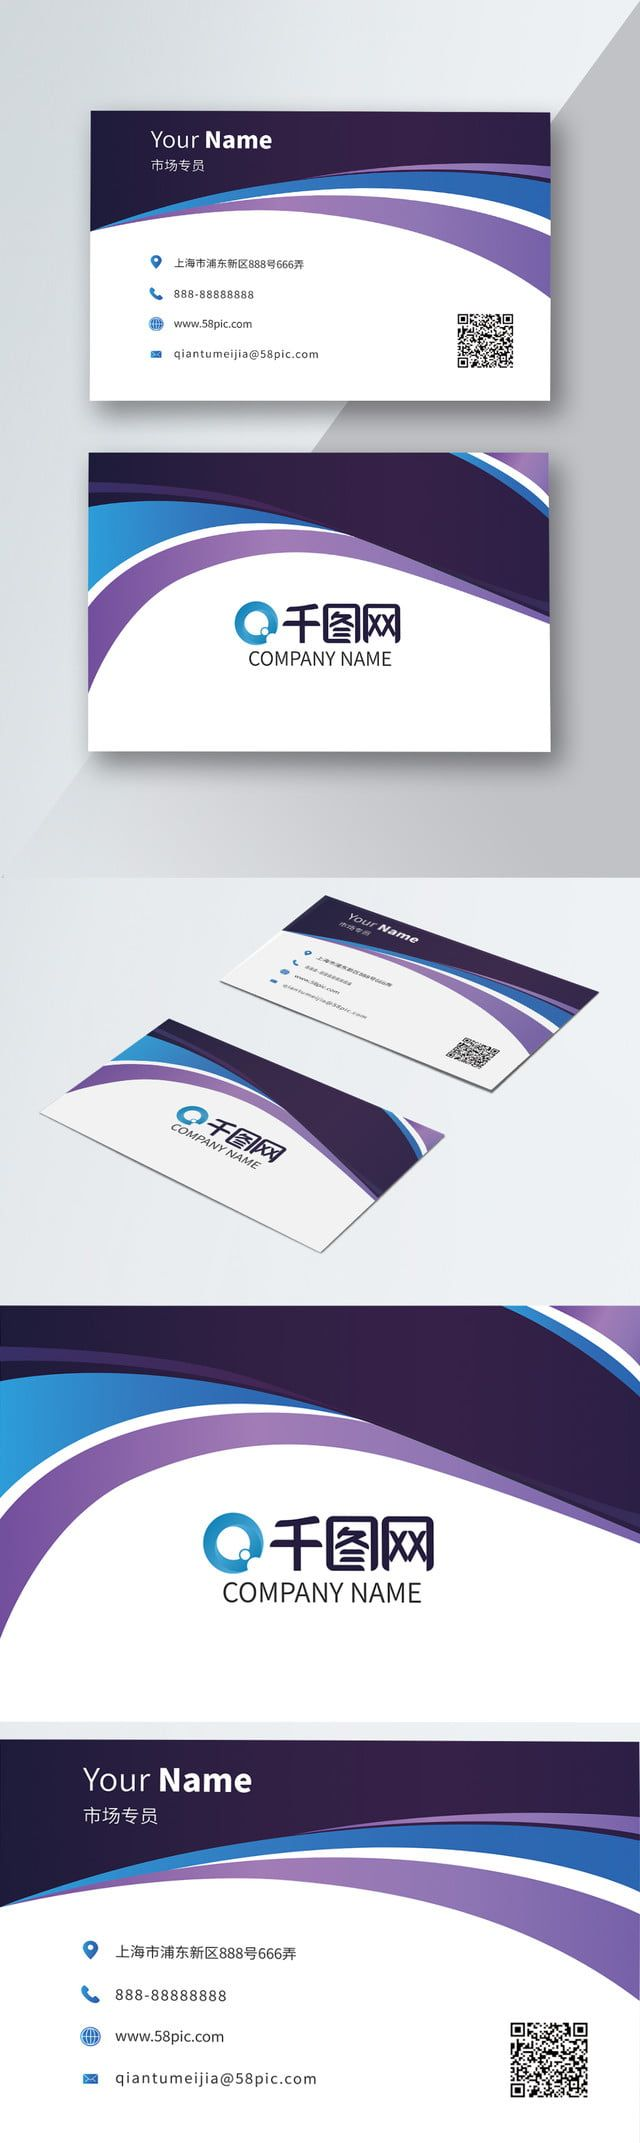 Business Card Pos Machine Installation Unionpay Logo Regarding Plastering Business Cards Templates Business Card Template Medical Business Card Card Template